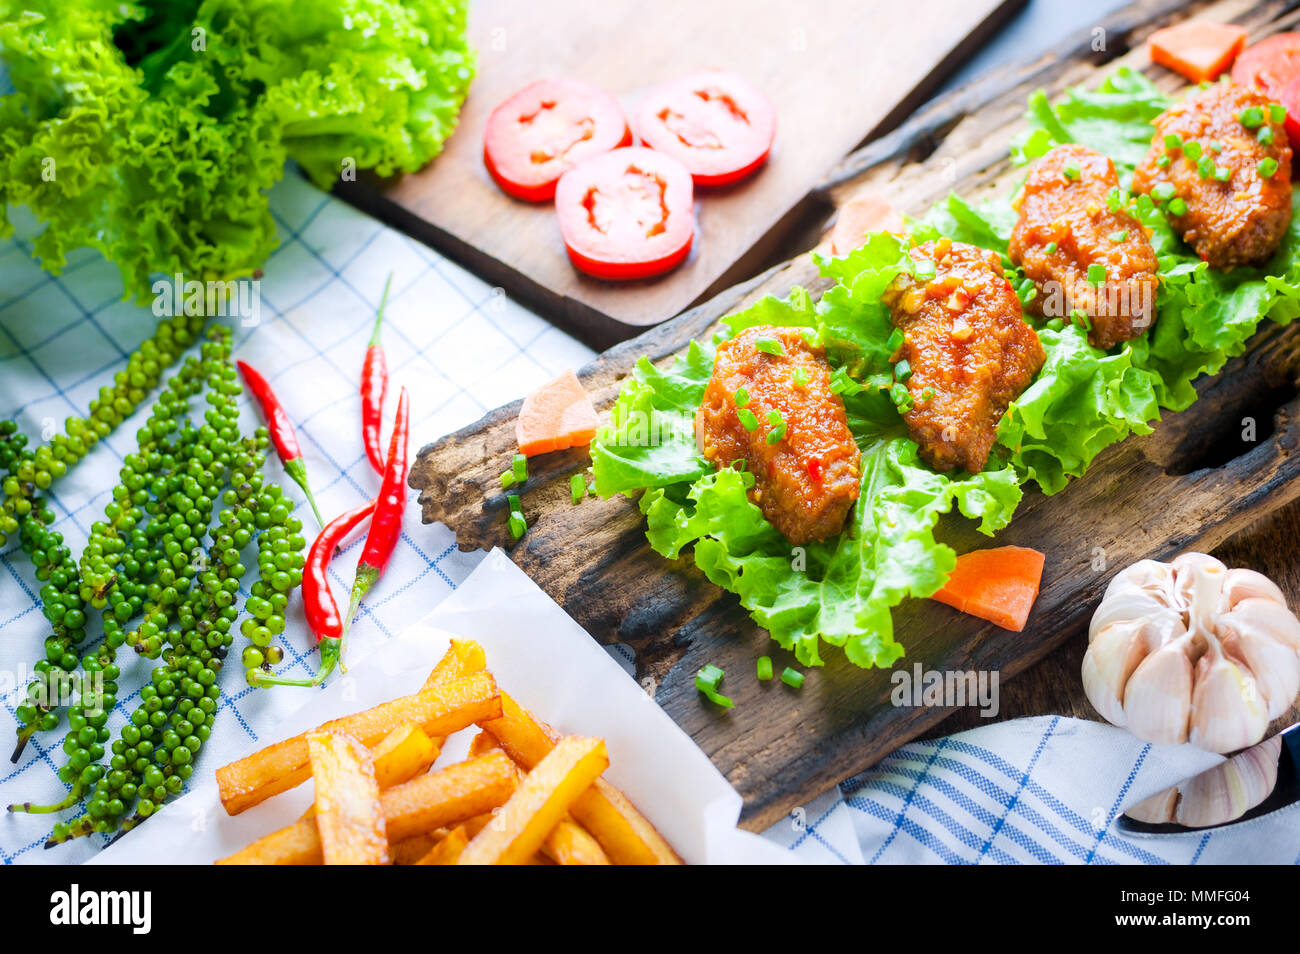 Fried chicken wings with spicy chilli sauce on rustic serving board, herbs and vegetable over wooden background. Stock Photo